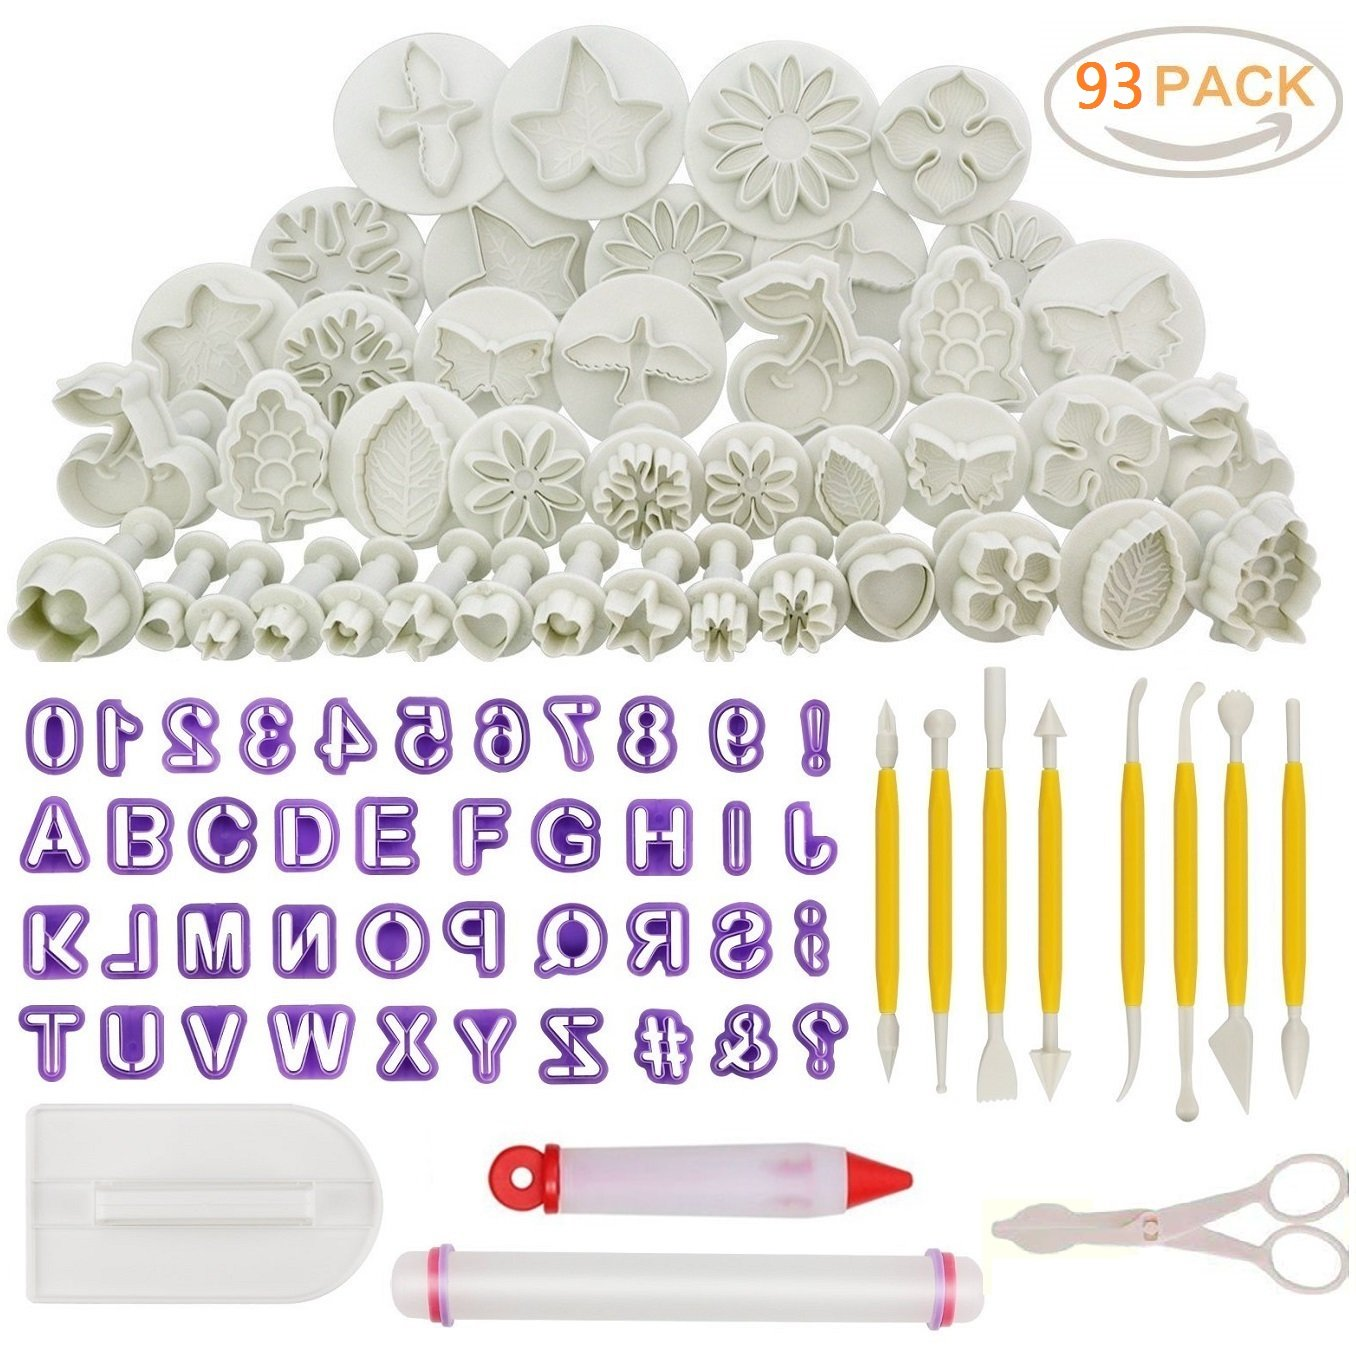 87pcs Cake Decorating Tool Set,Sugarcraft Cookie Mould Icing Plunger Modelling Cutter Tool,Alphabet Letters Rolling Pin Scissors Embosser Mould Tools,Flower Modelling Tools